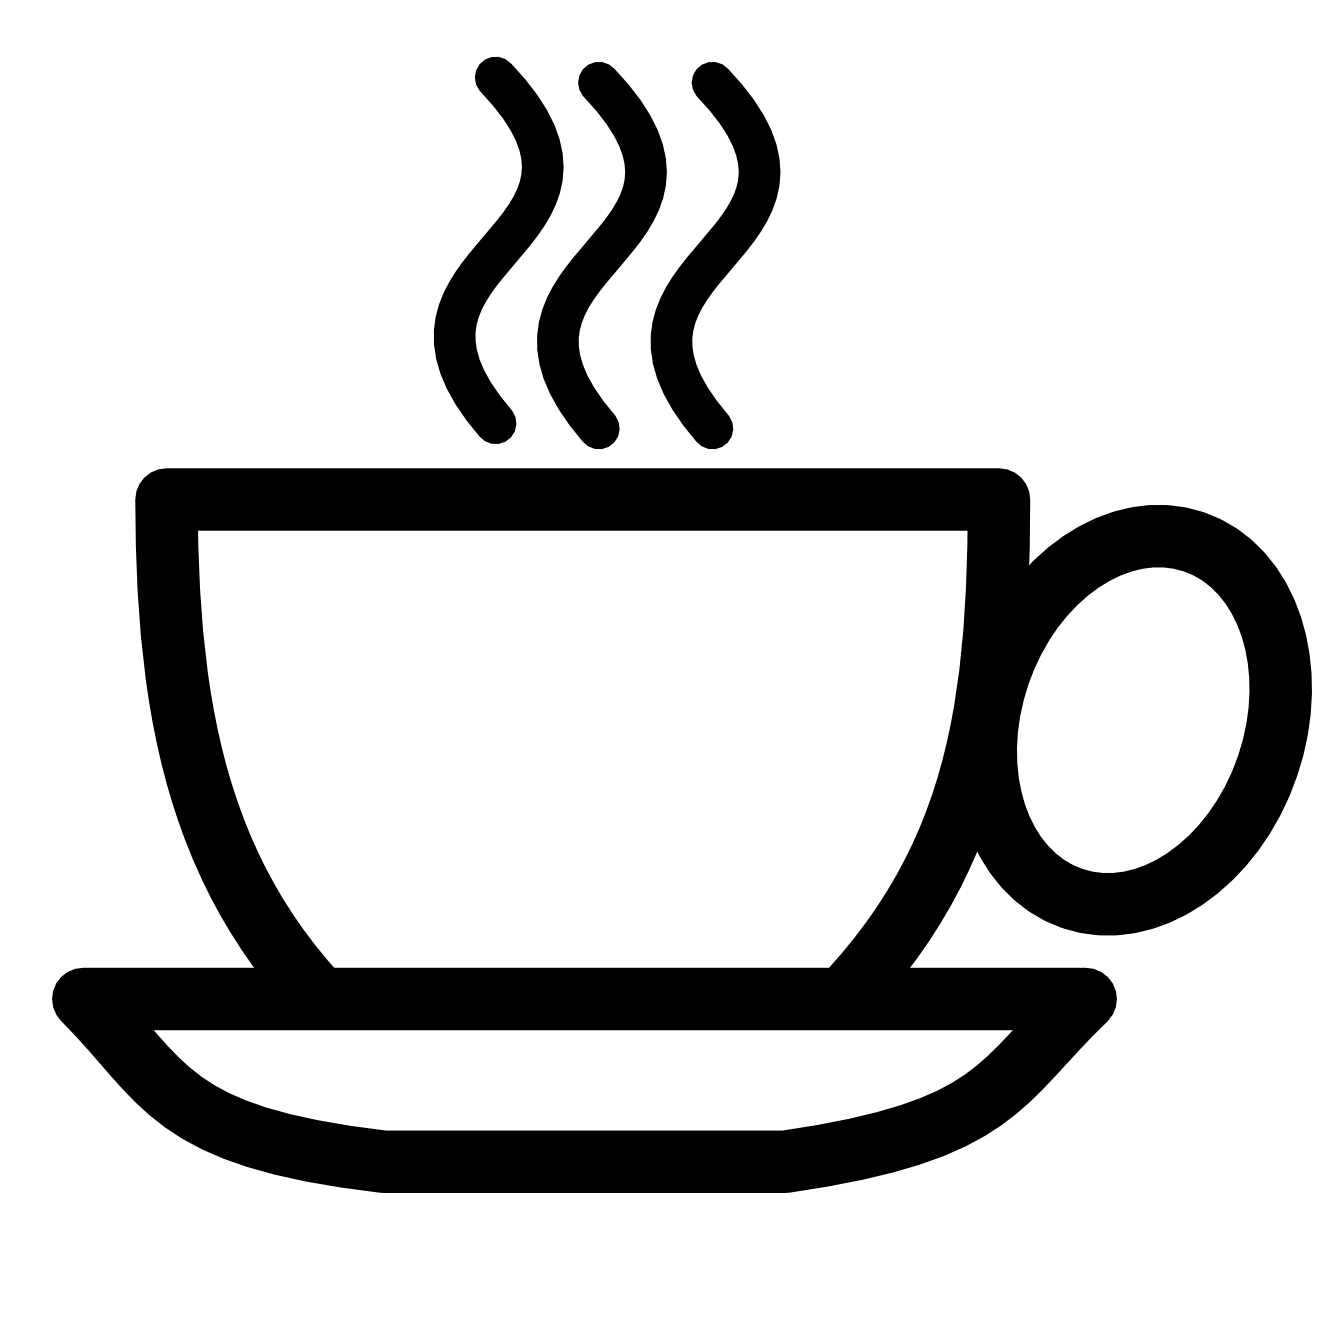 Coffee clipart black and white #2 - PNG Cup Black And White